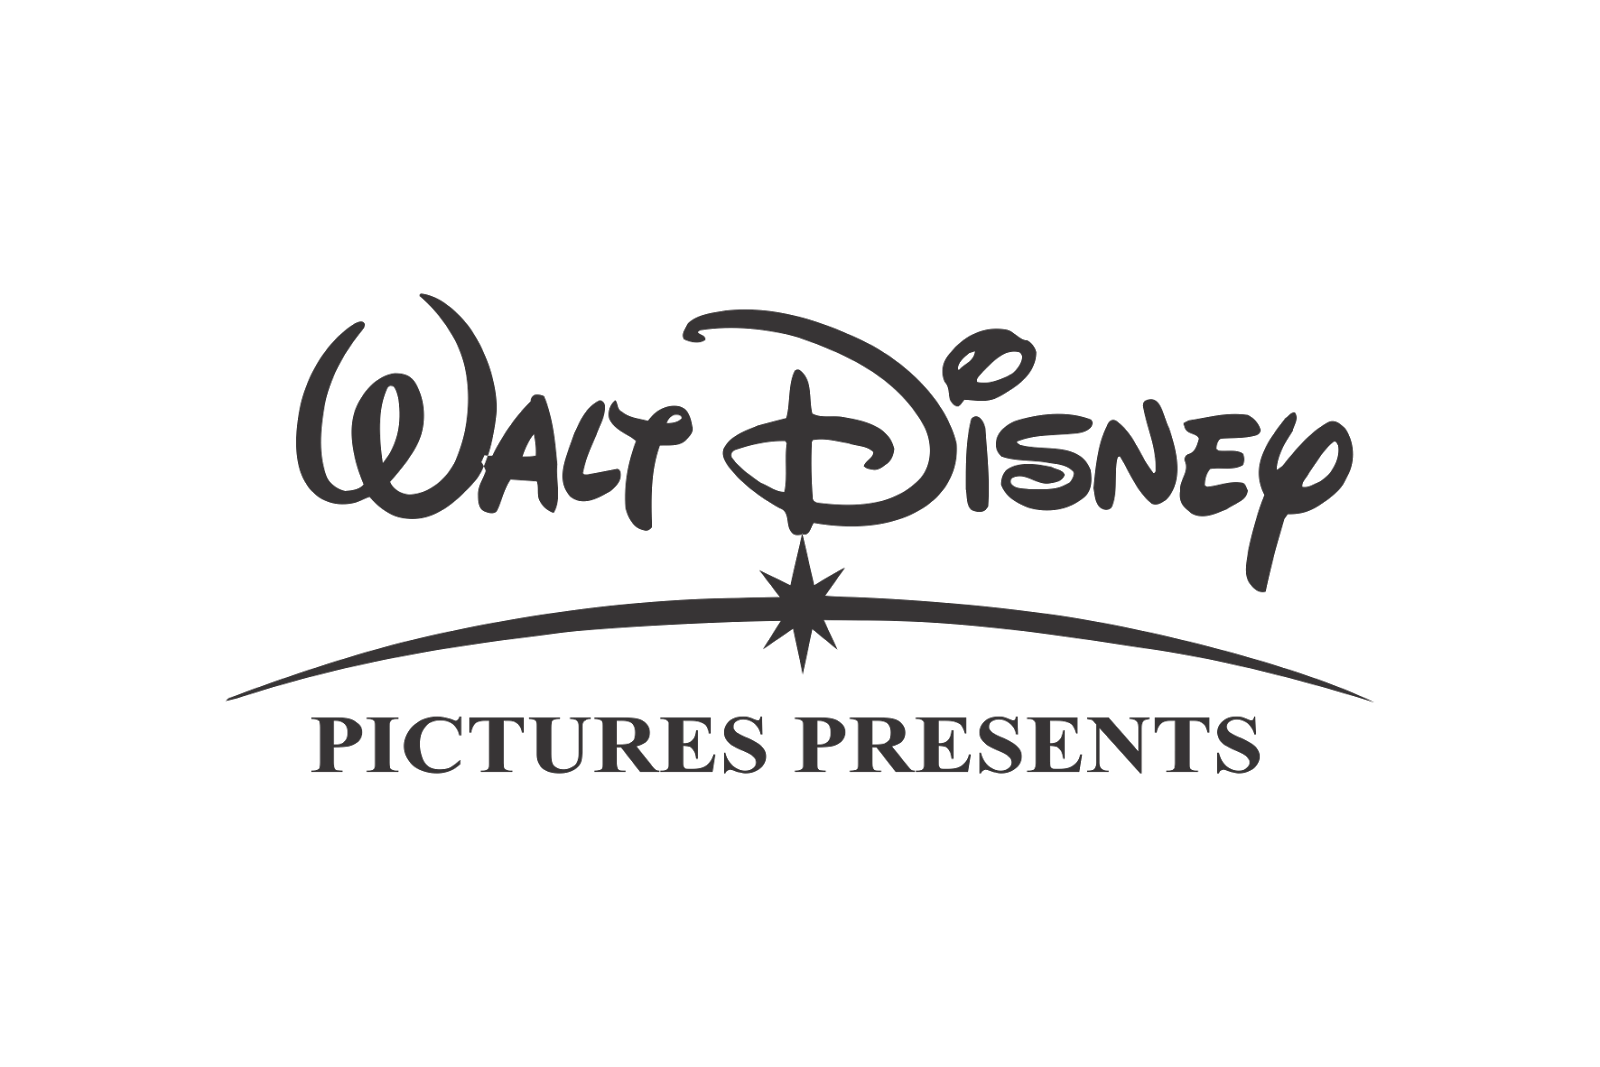 Walt disney pictures presents Logos.